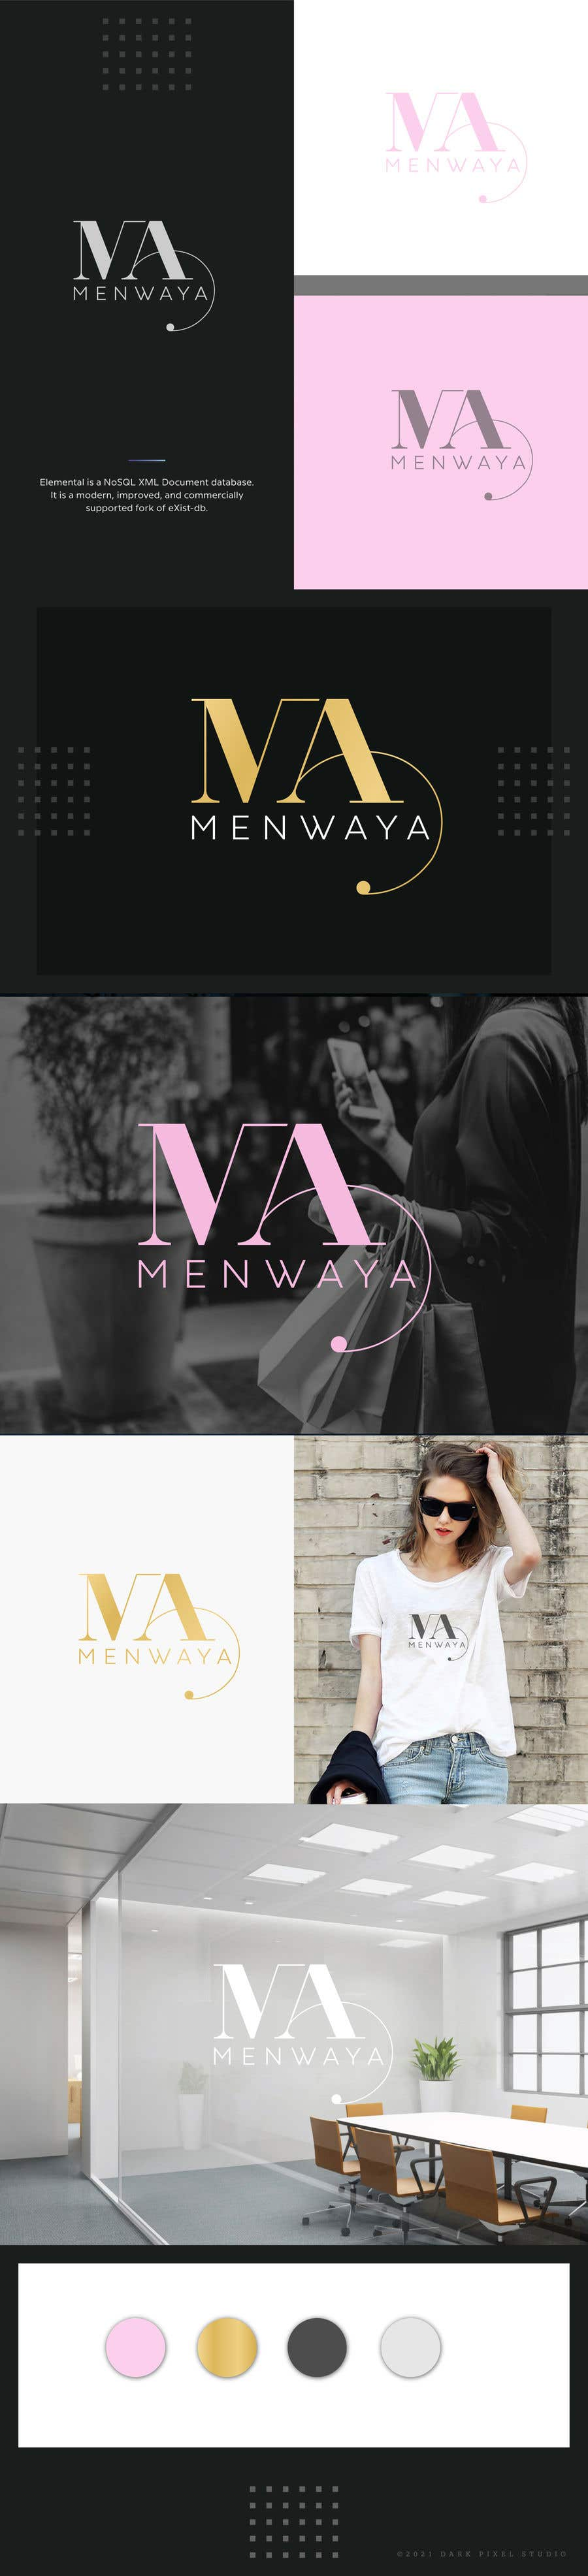 Contest Entry #                                        317                                      for                                         Design logo and branding (corporate identity) for new company - MINVAYAA